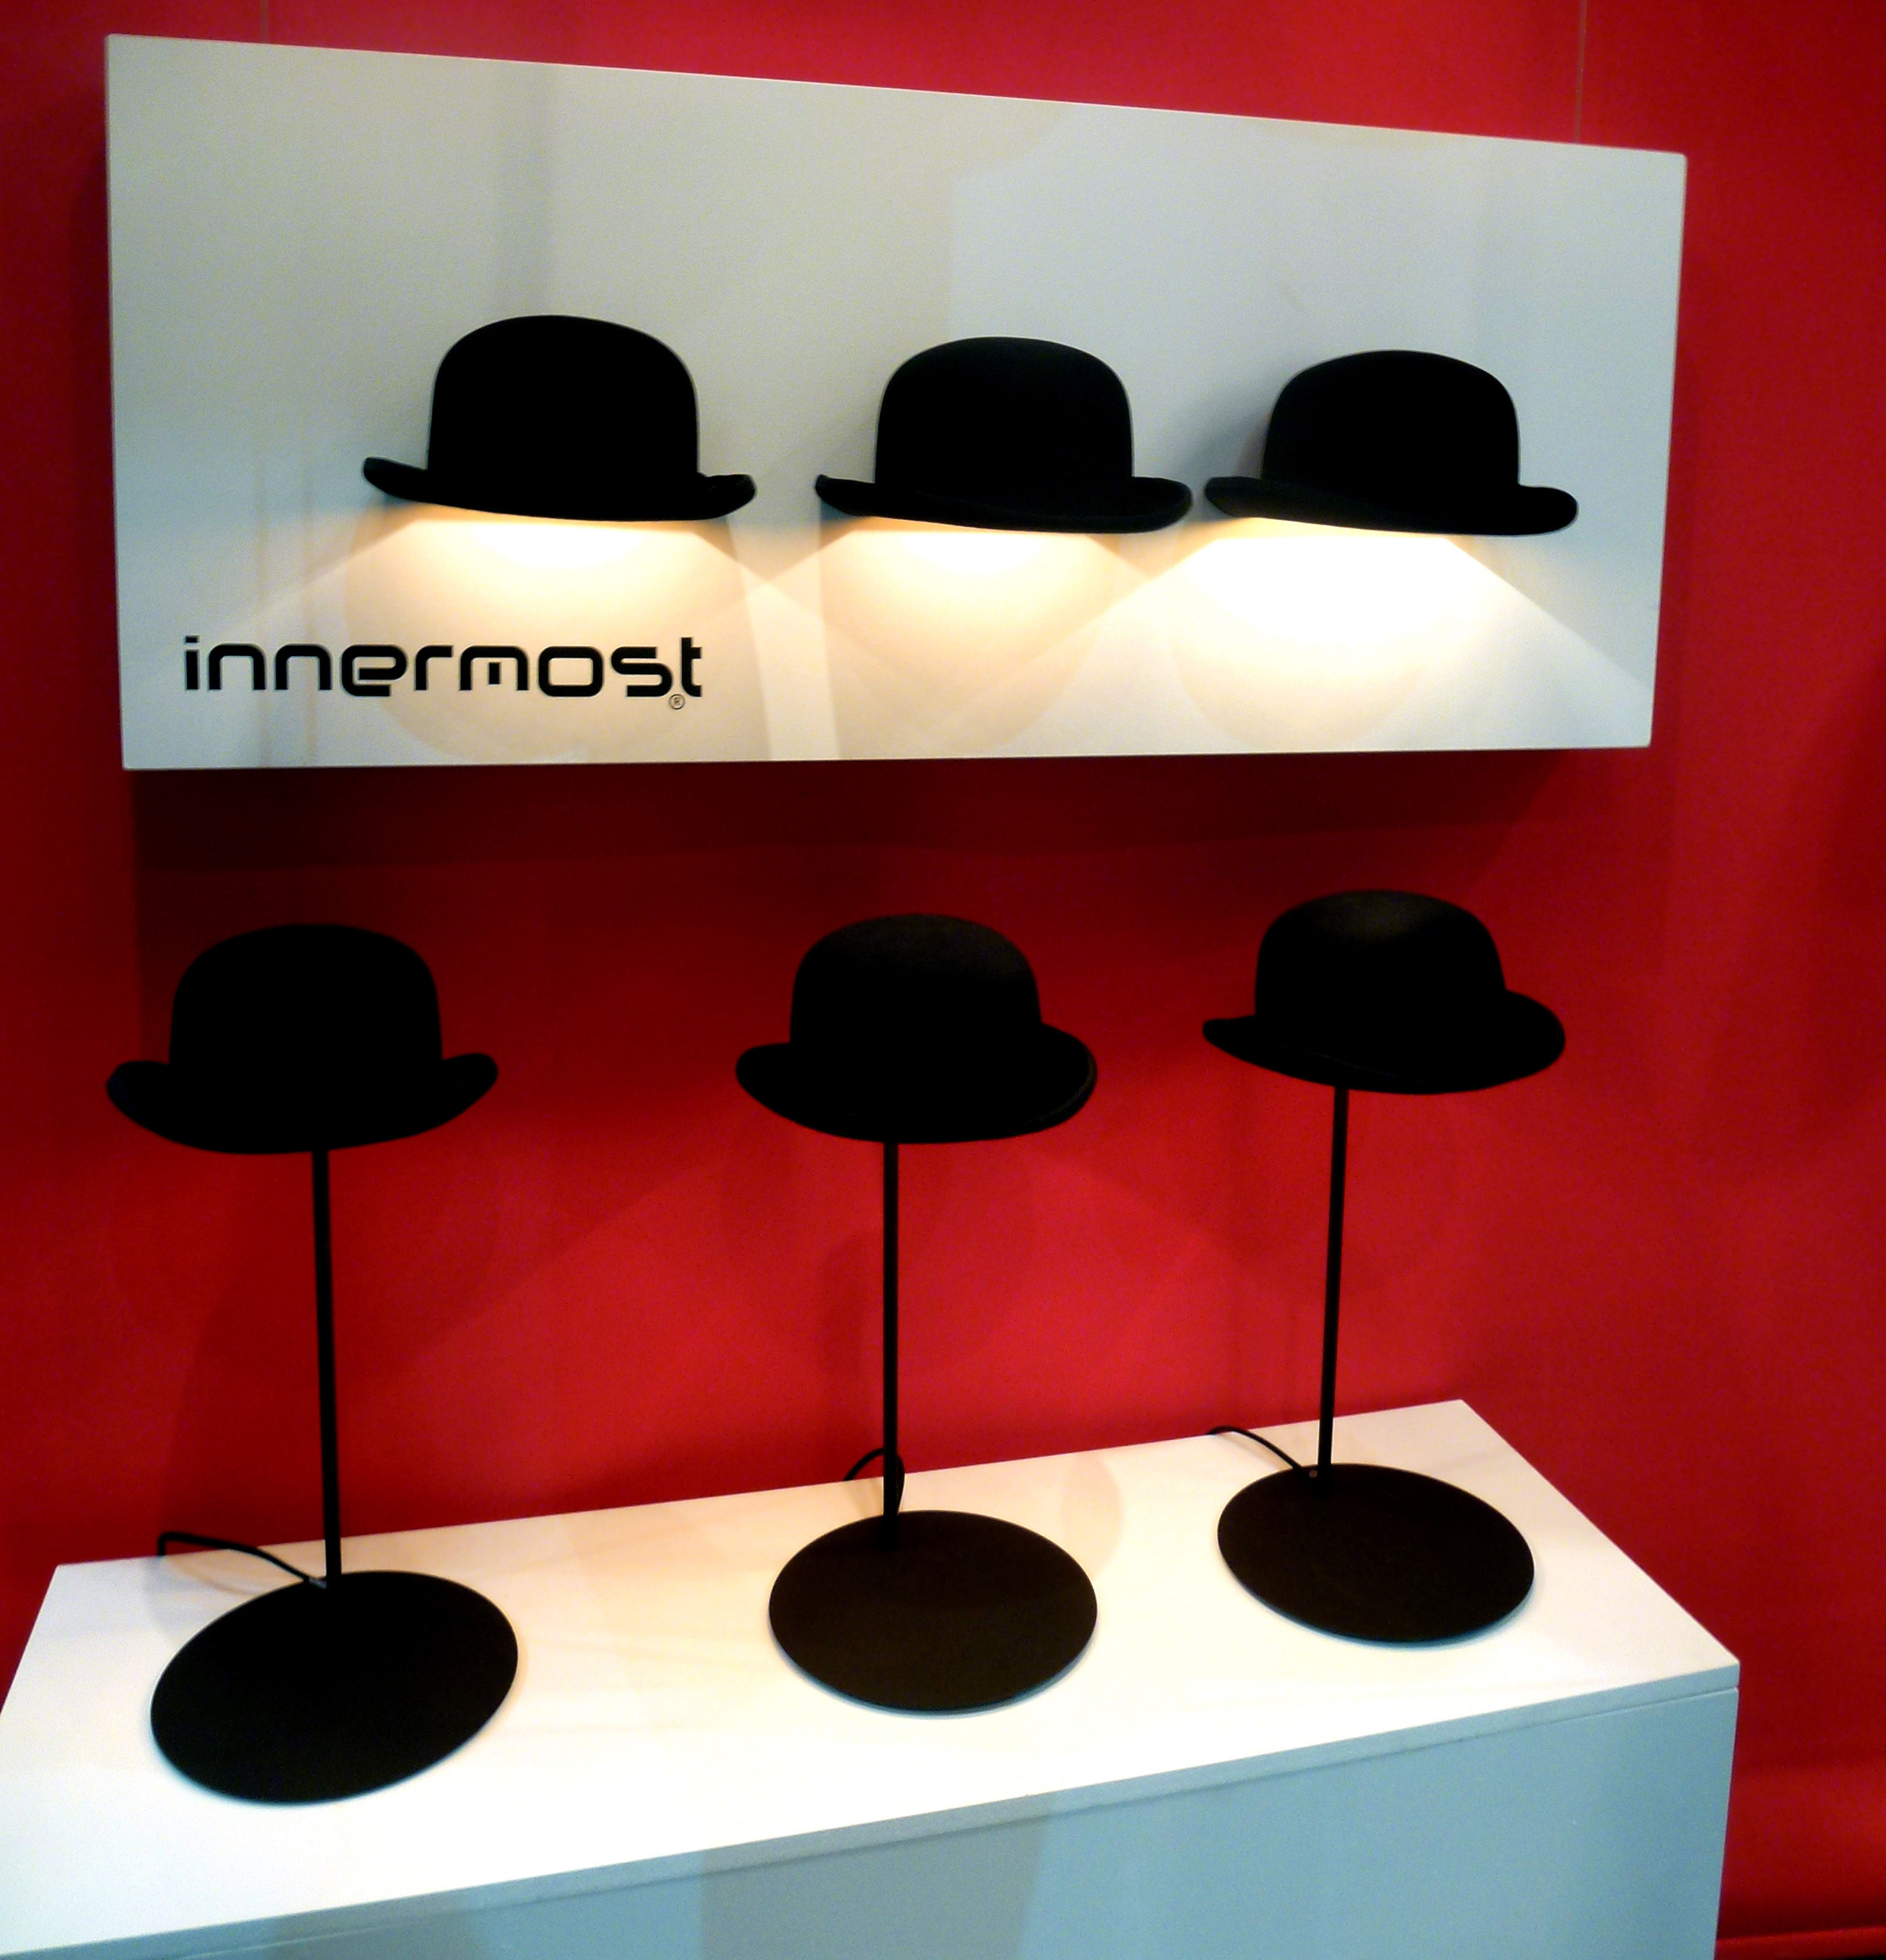 d1221c4cd71 ... Lighting - Wall Lights - Jeeves Wall light by Innermost - Black bowler    Gold inside